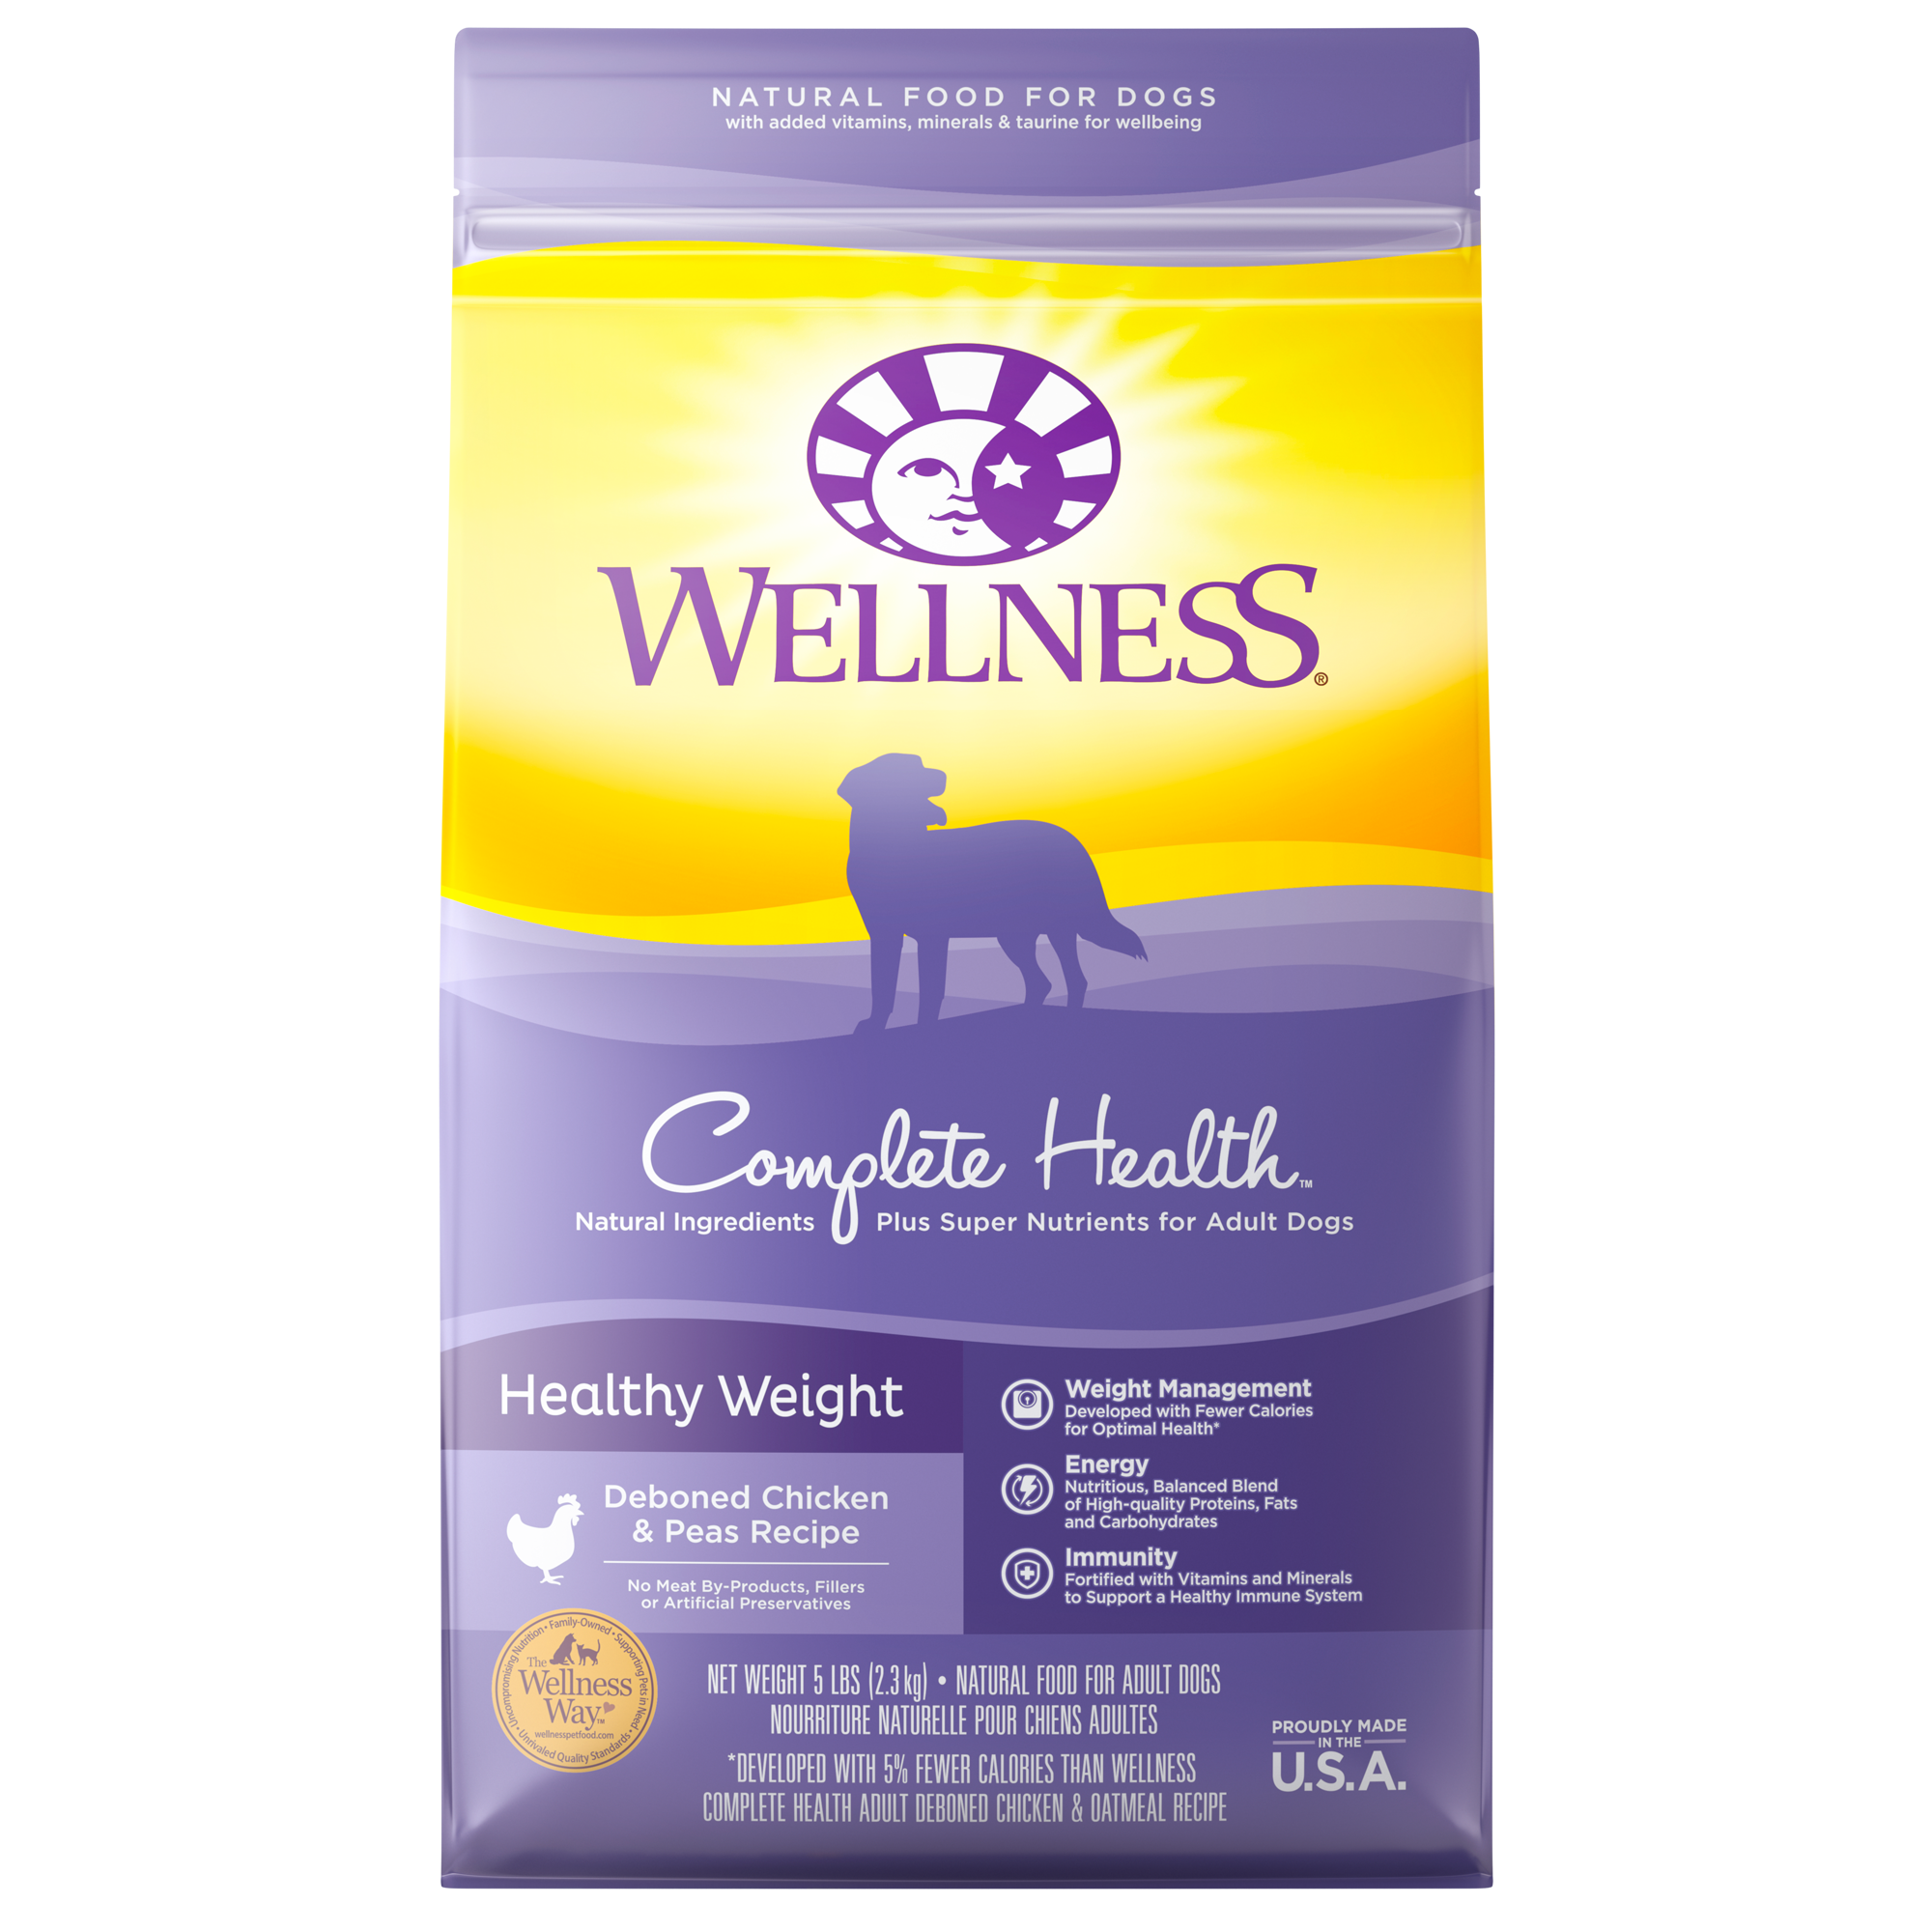 Wellness Complete Health Healthy Weight Deboned Chicken & Peas Recipe Dry Dog Food, 13-lb